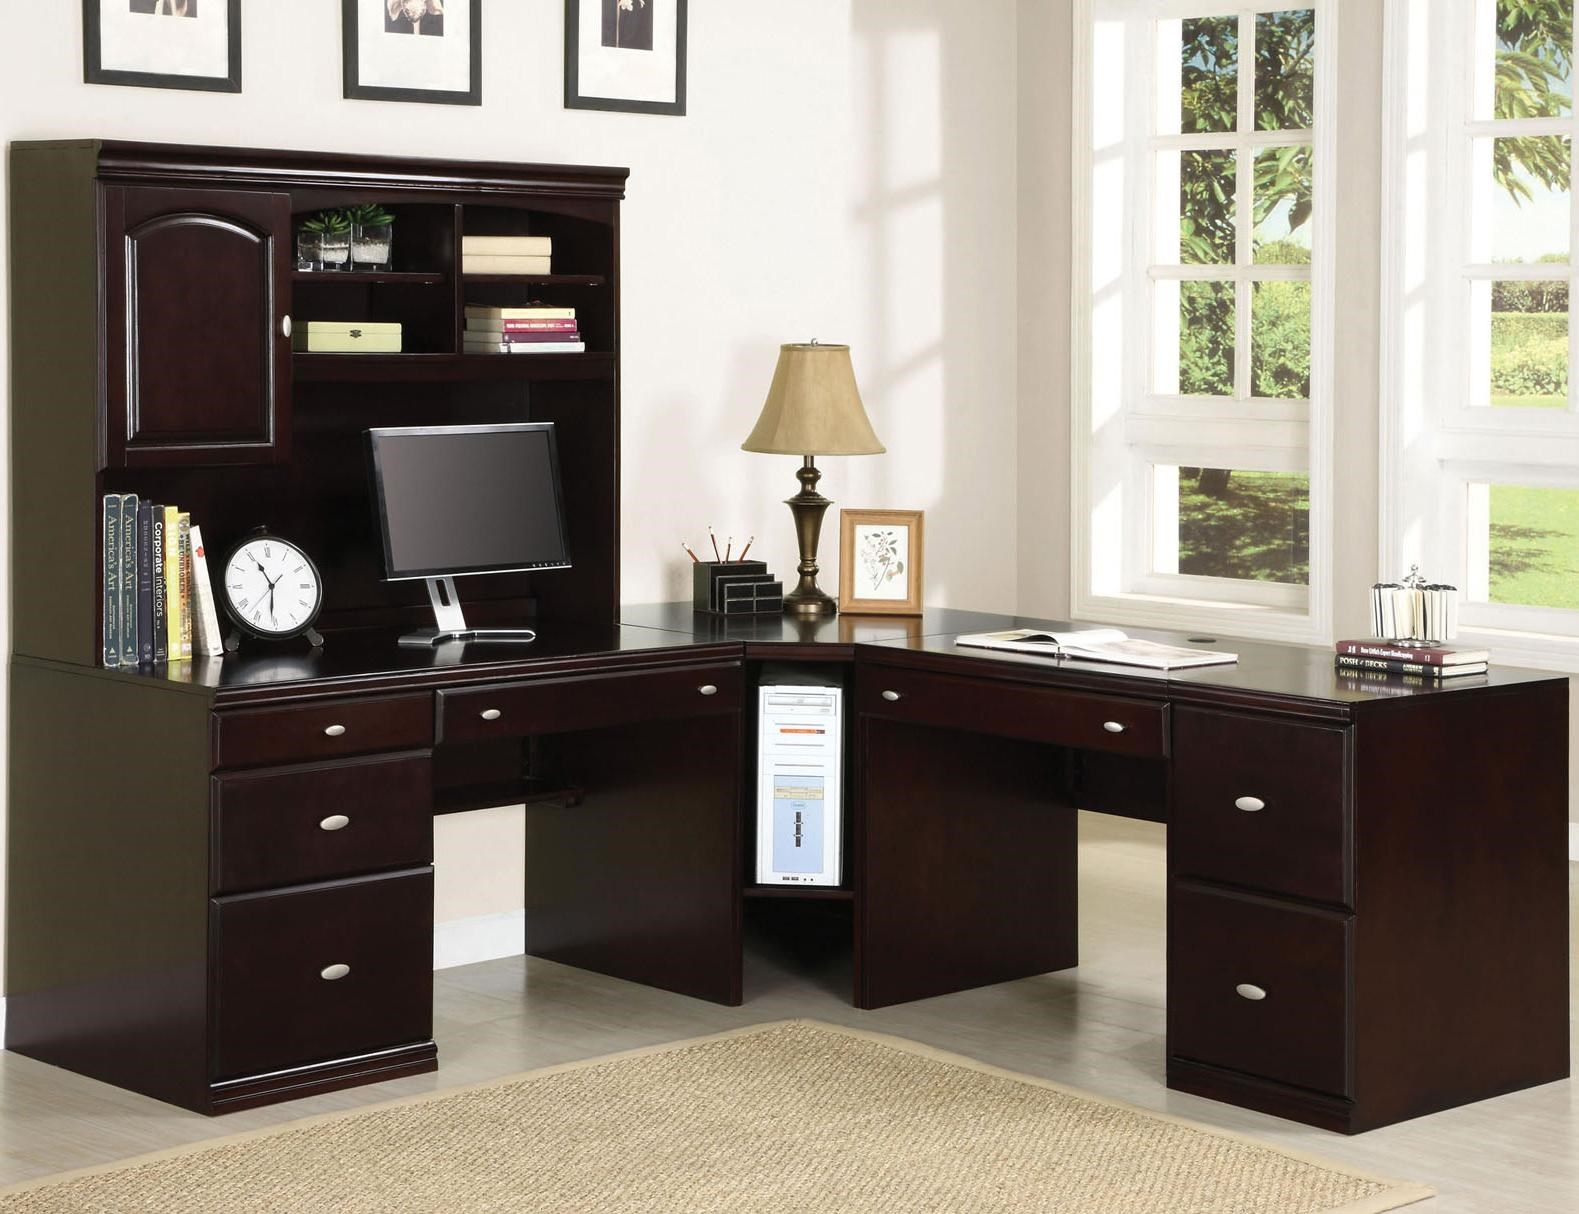 Desk With File Cabinet Cape Espresso File Cabinet W 2 Drawers By Acme Furniture At Nassau Furniture And Mattress